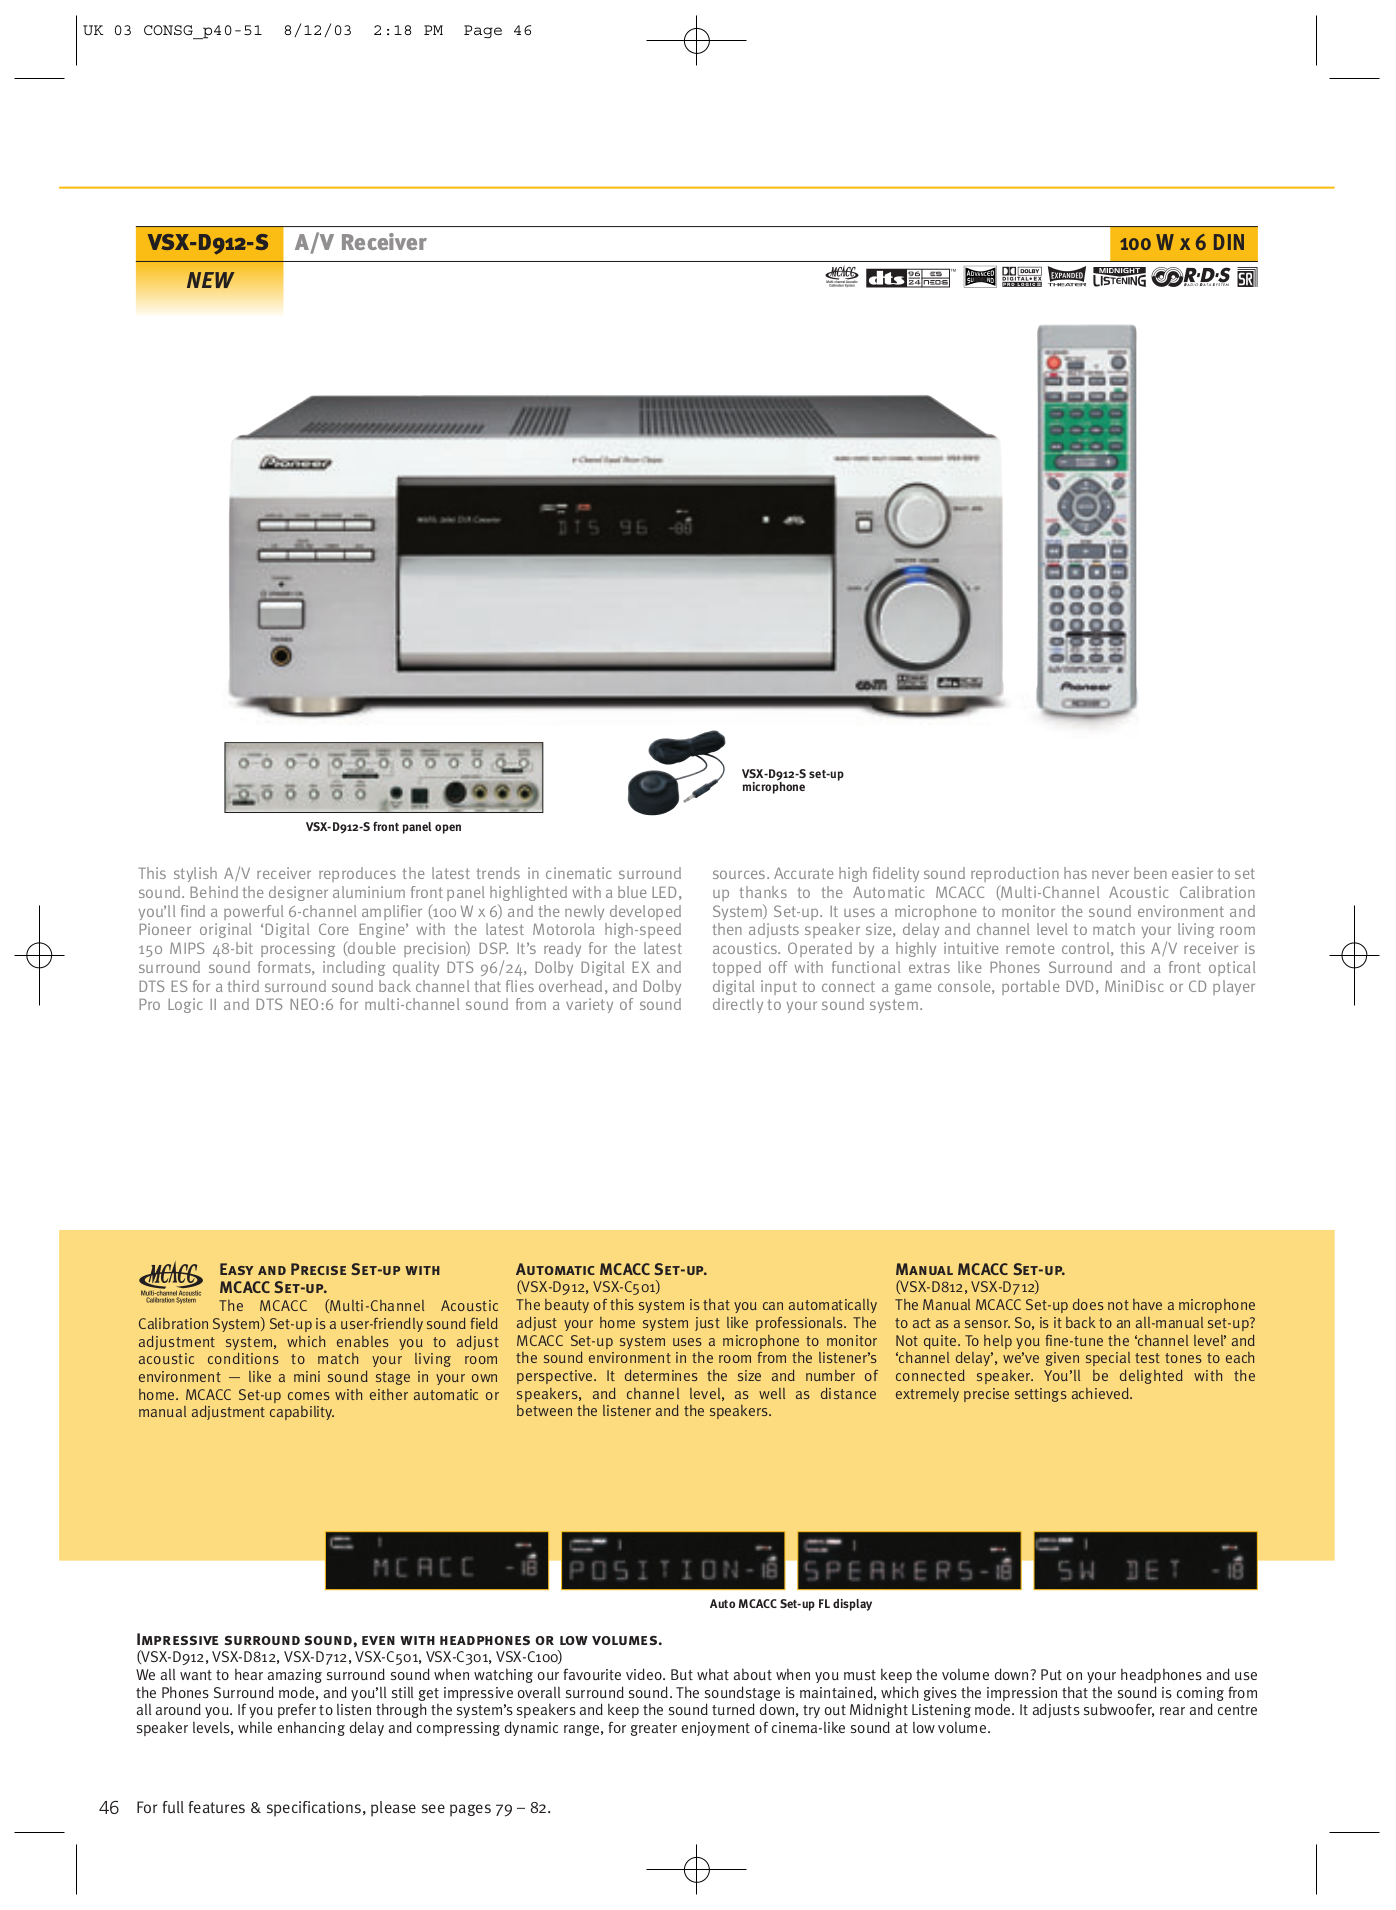 ... Pioneer Receiver VSX-D712 pdf page preview ...